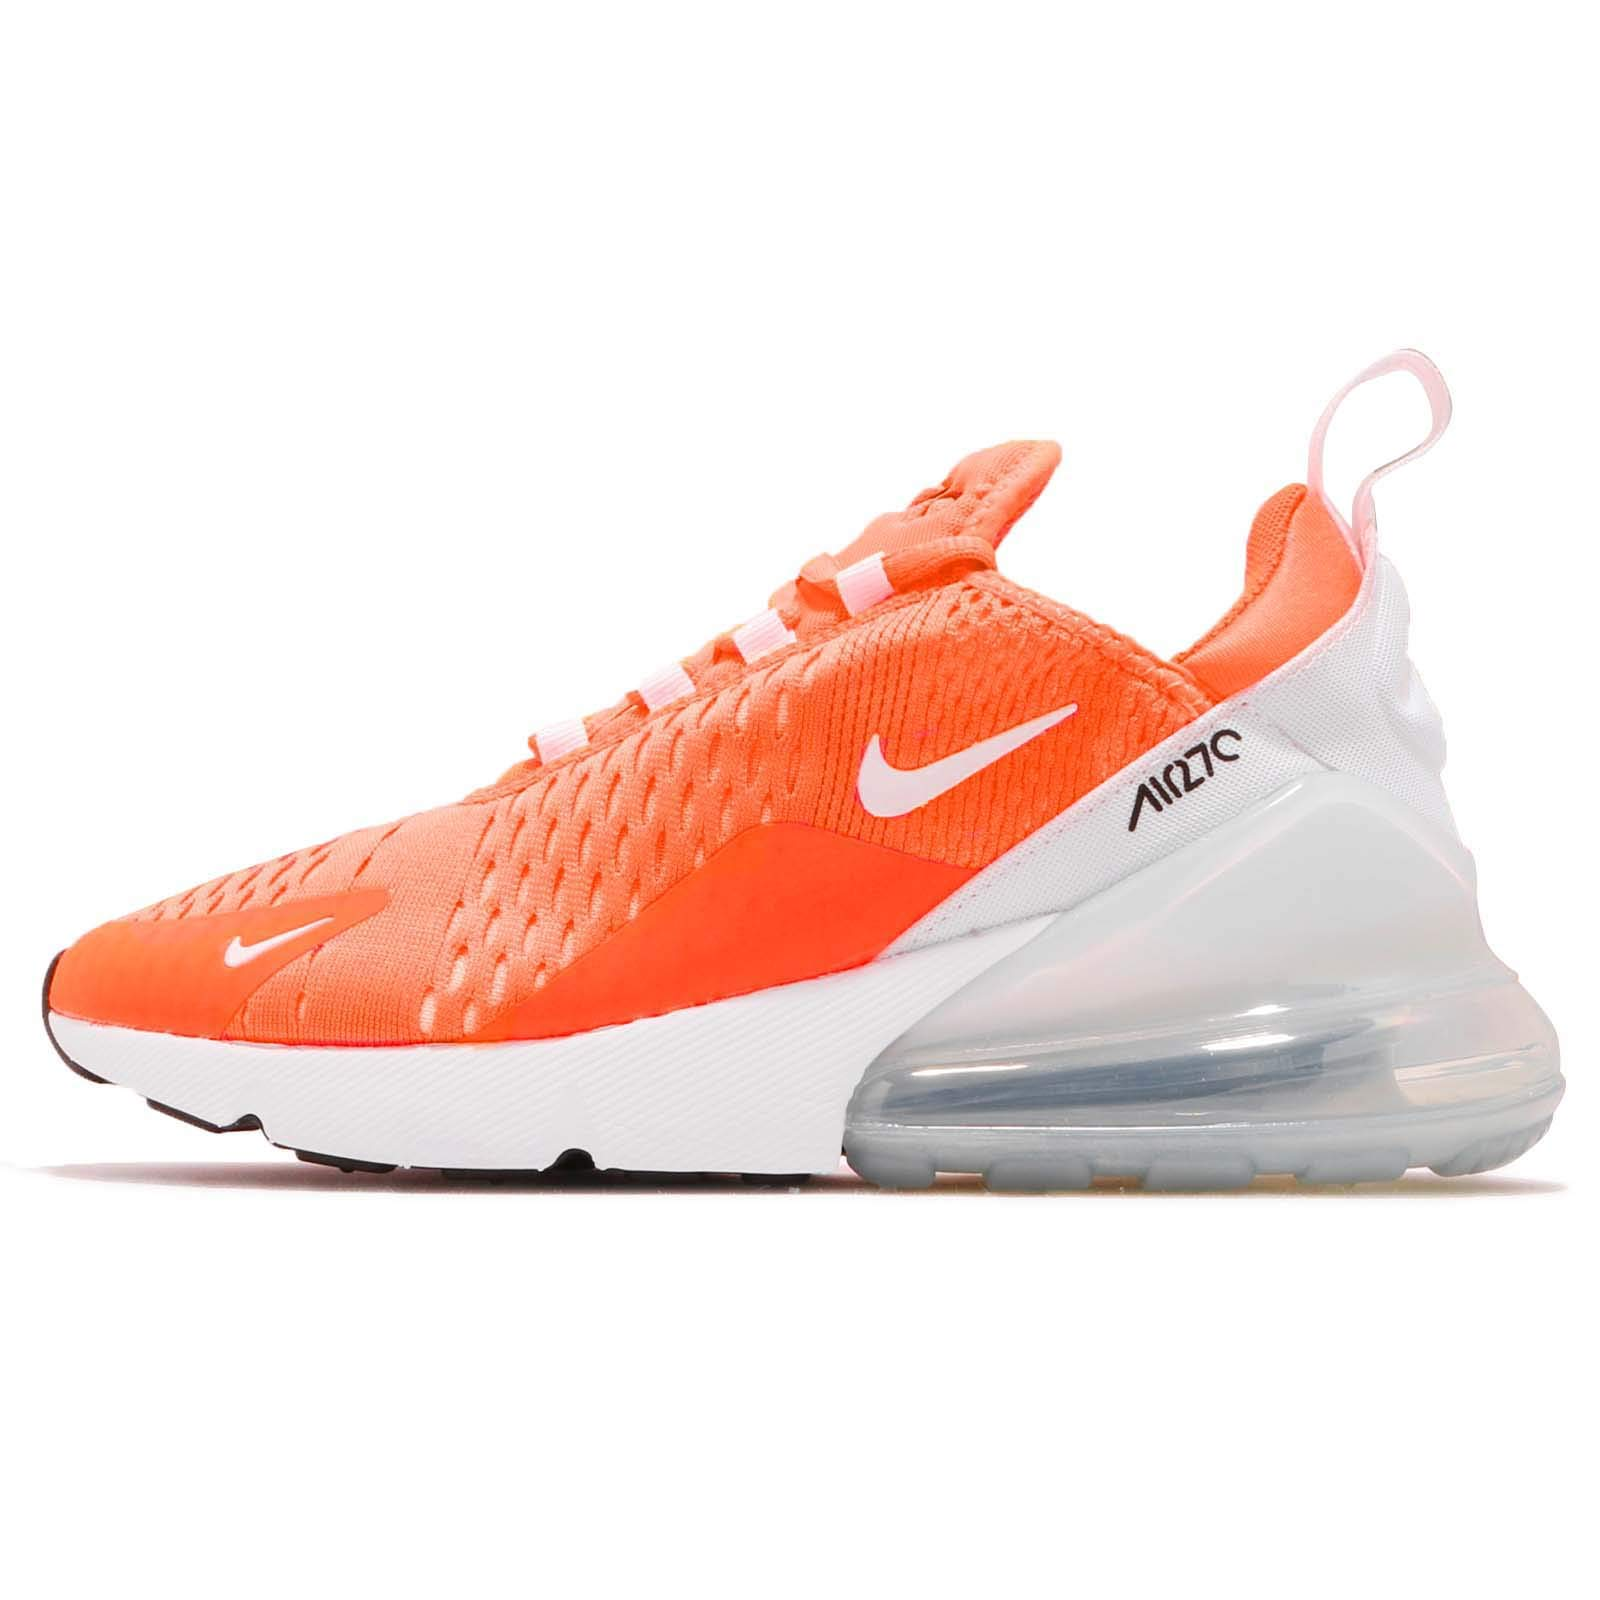 the latest 1d8b7 ad8d9 Galleon - Nike Women's Air Max 270 Running Shoes-Total ...